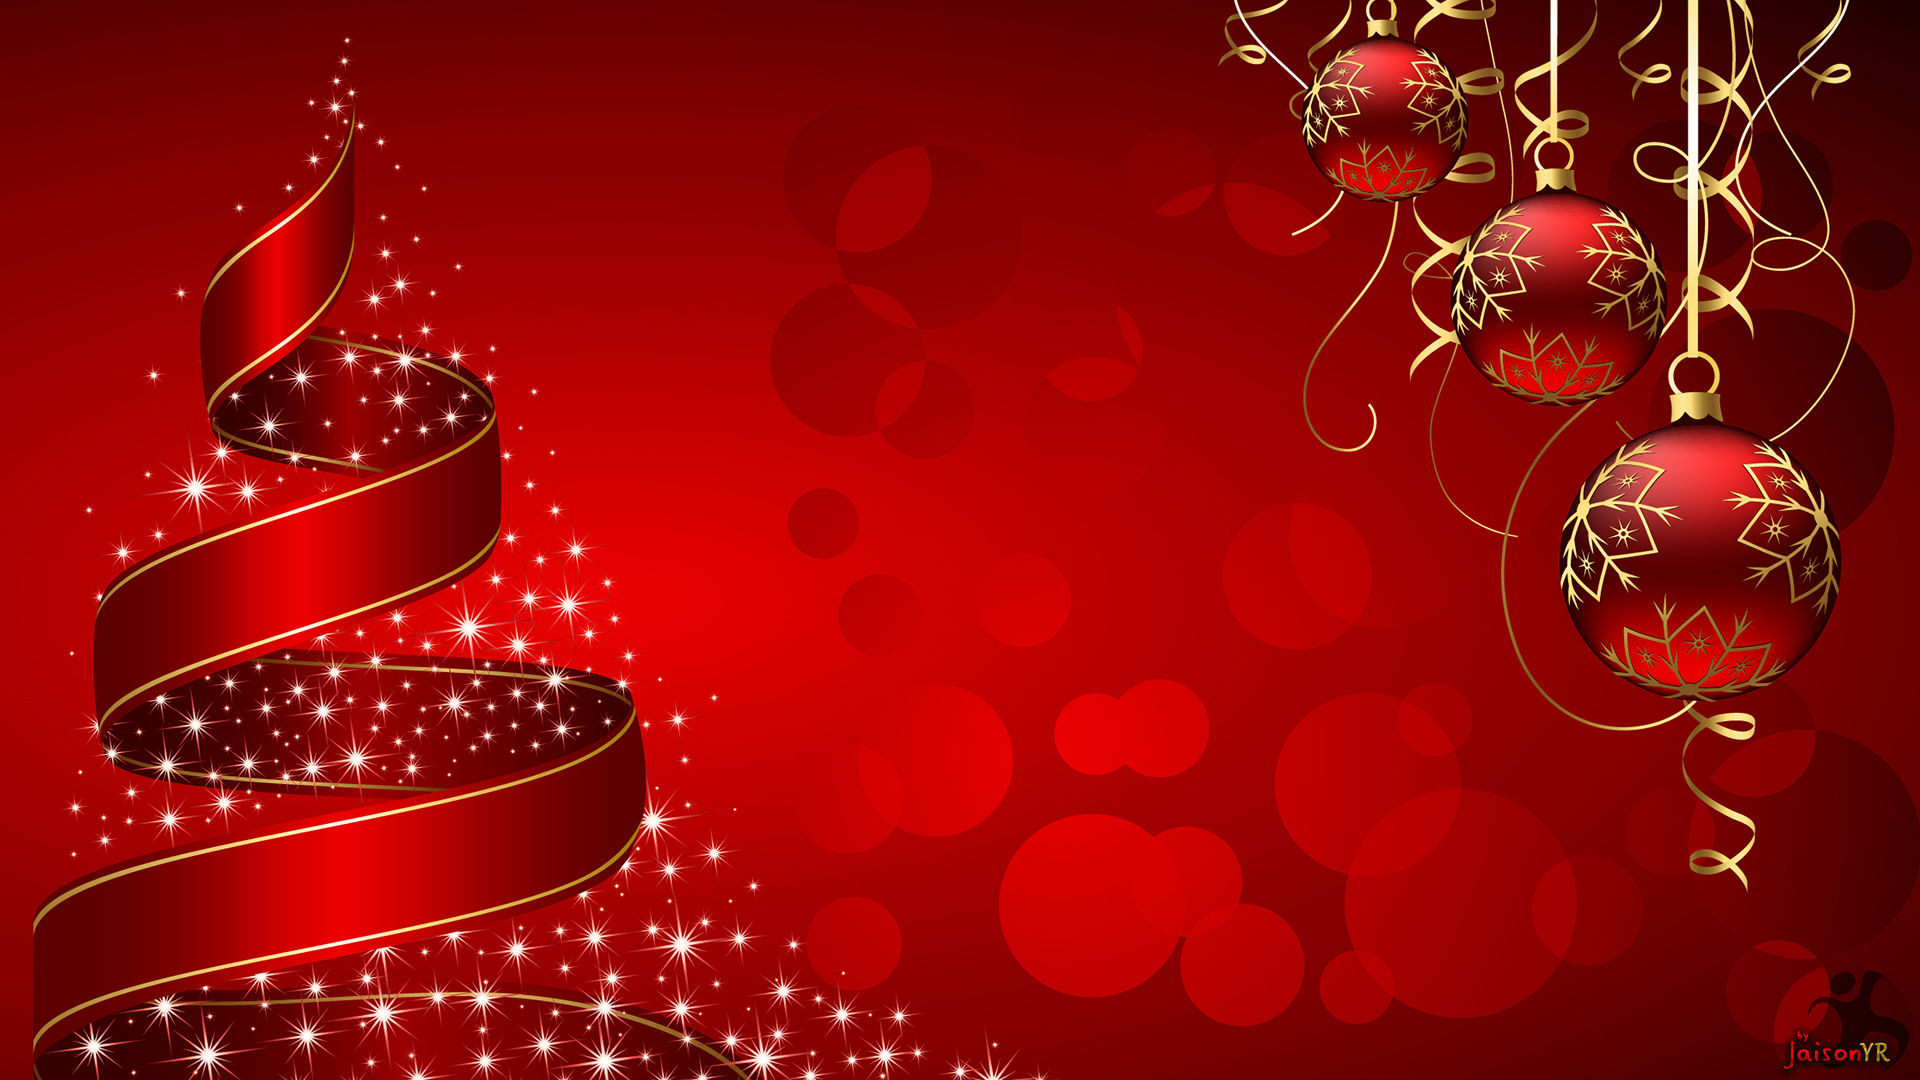 Christmas wallpapers Christmas decorations and ribbon on Christmas 1920x1080